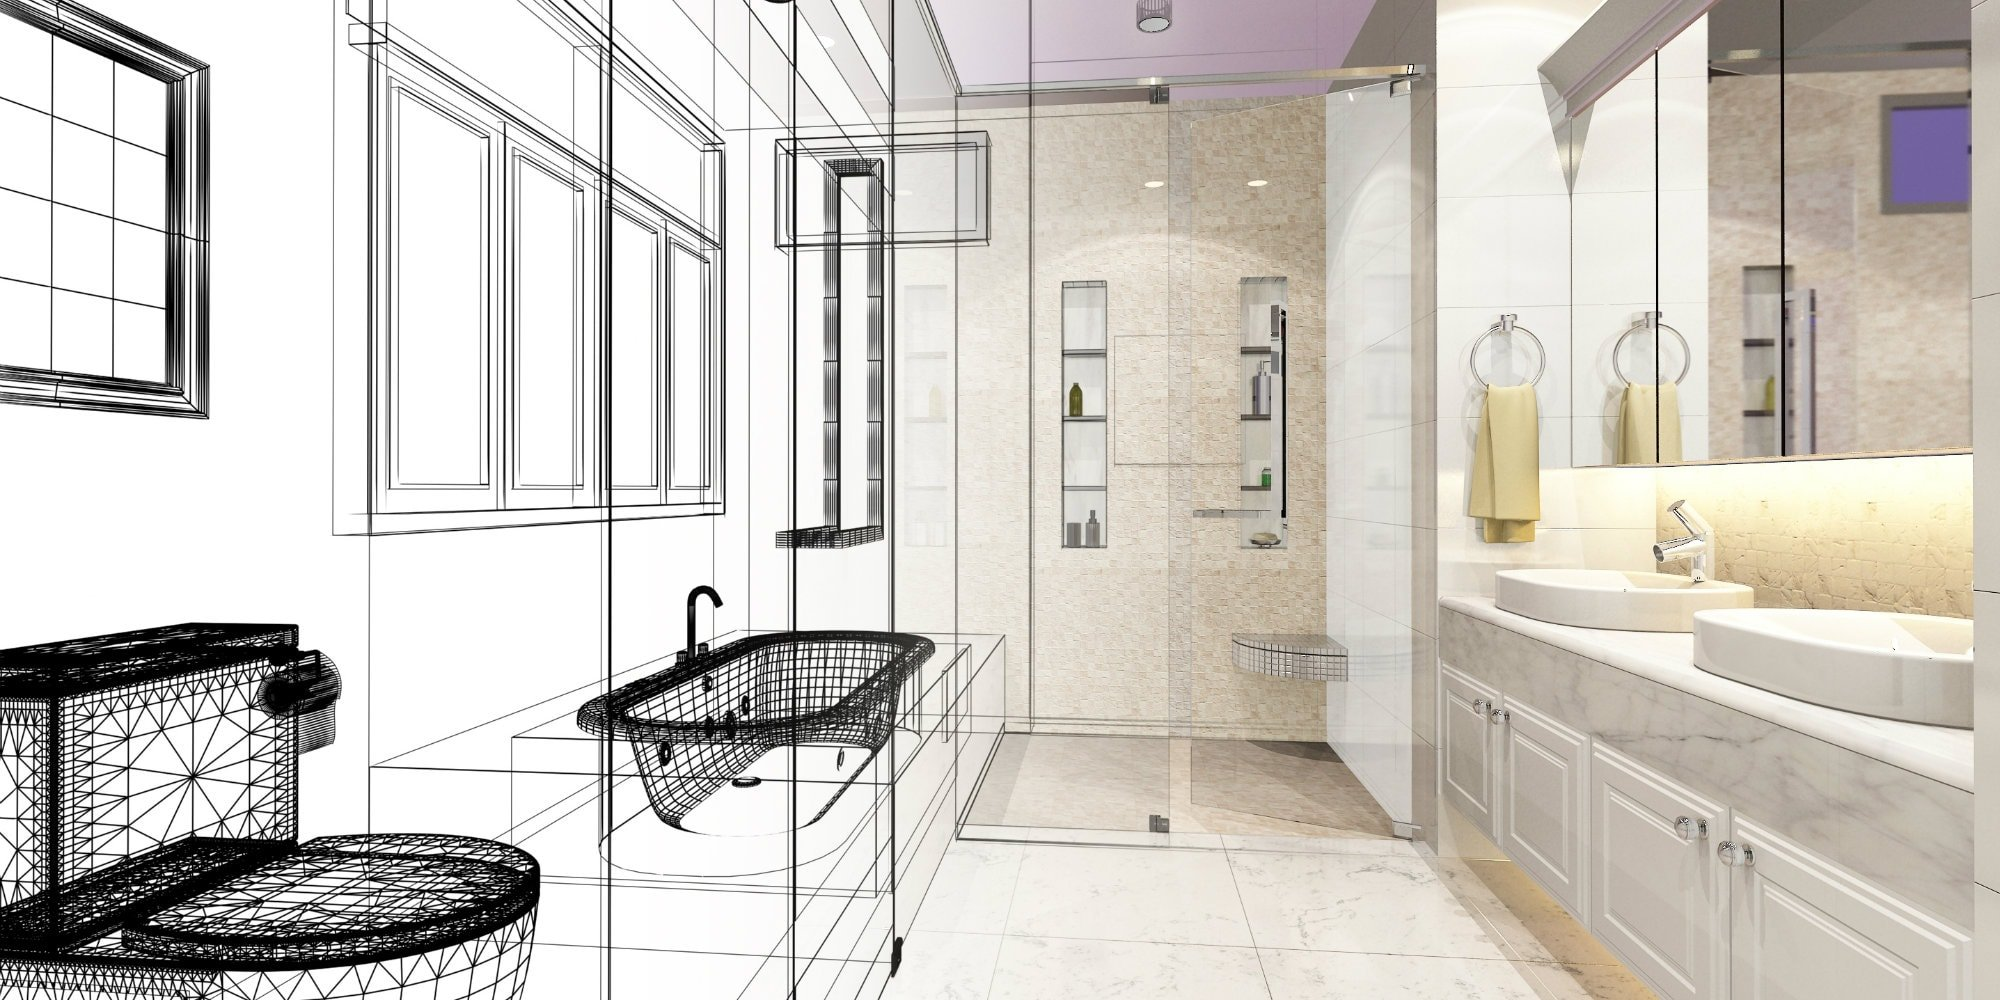 2018 Bathroom Design Trends According to the Experts